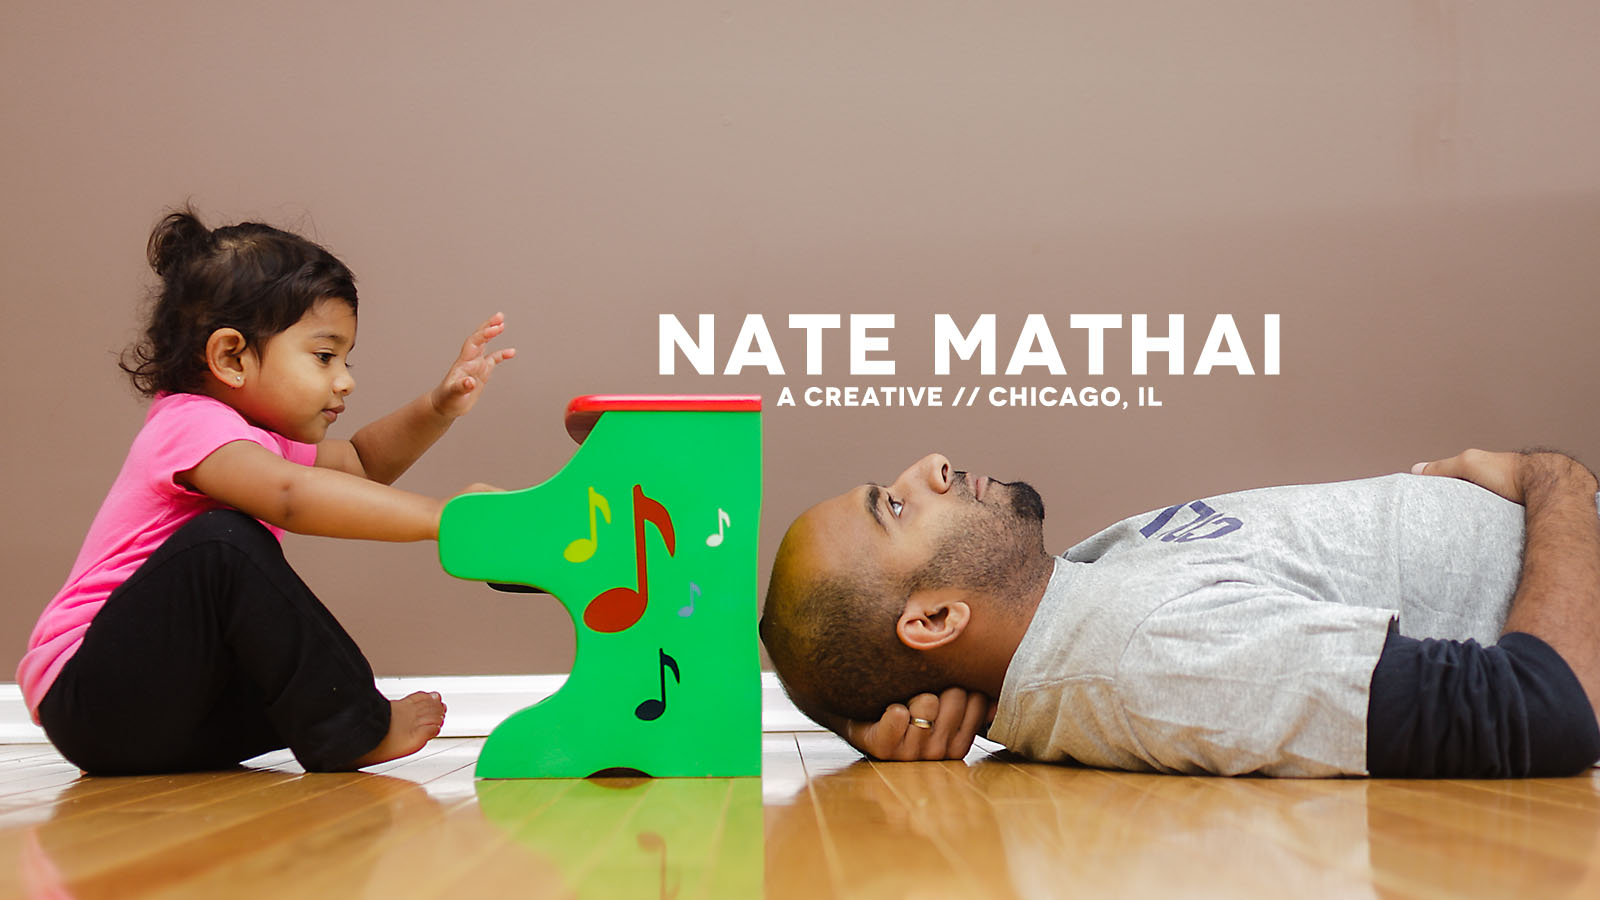 top image for JOIN THE CHALLENGE! by chicago wedding photographer nate mathai